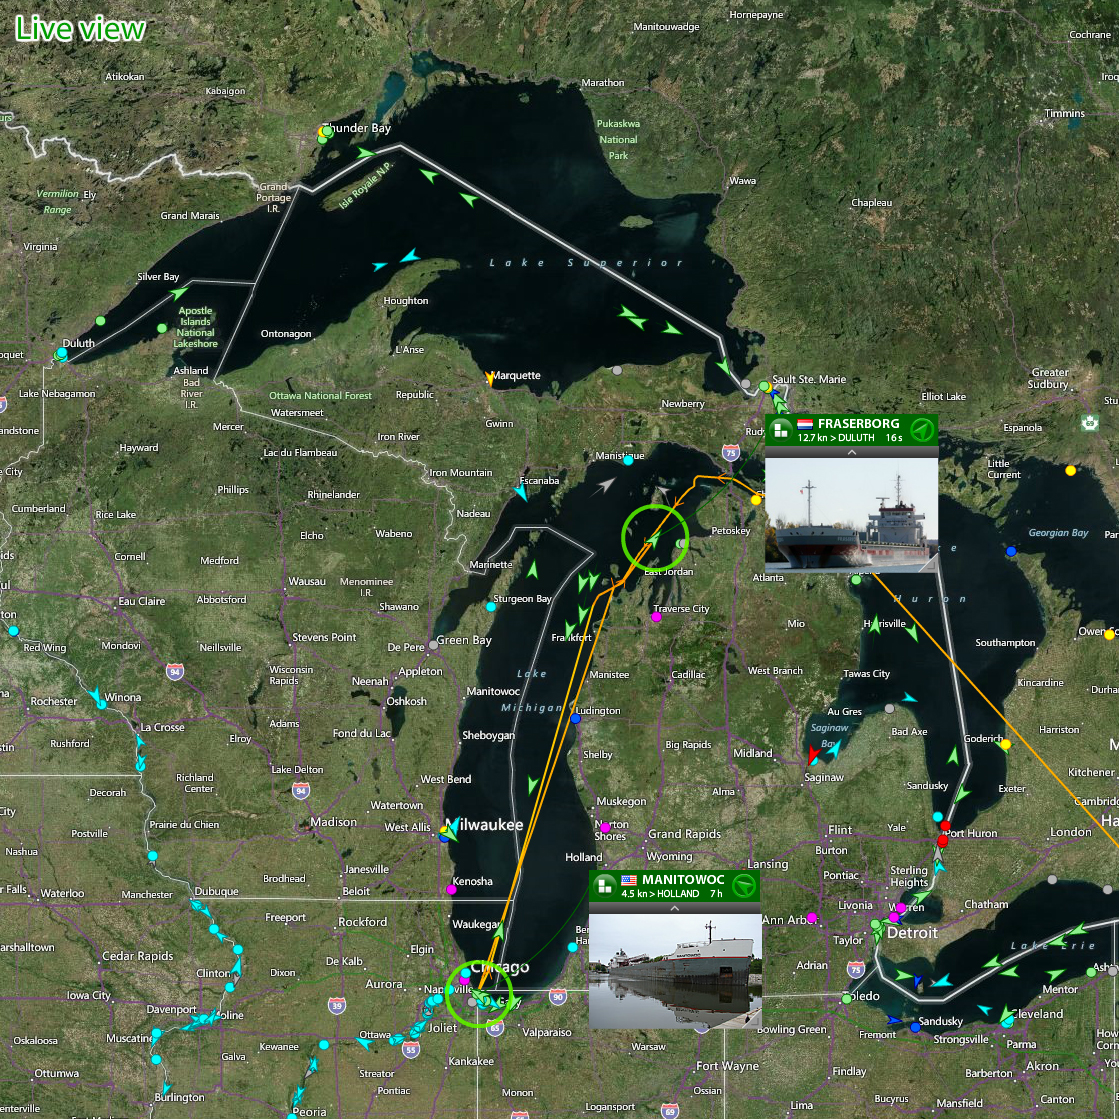 Great Lakes with live AIS coverage